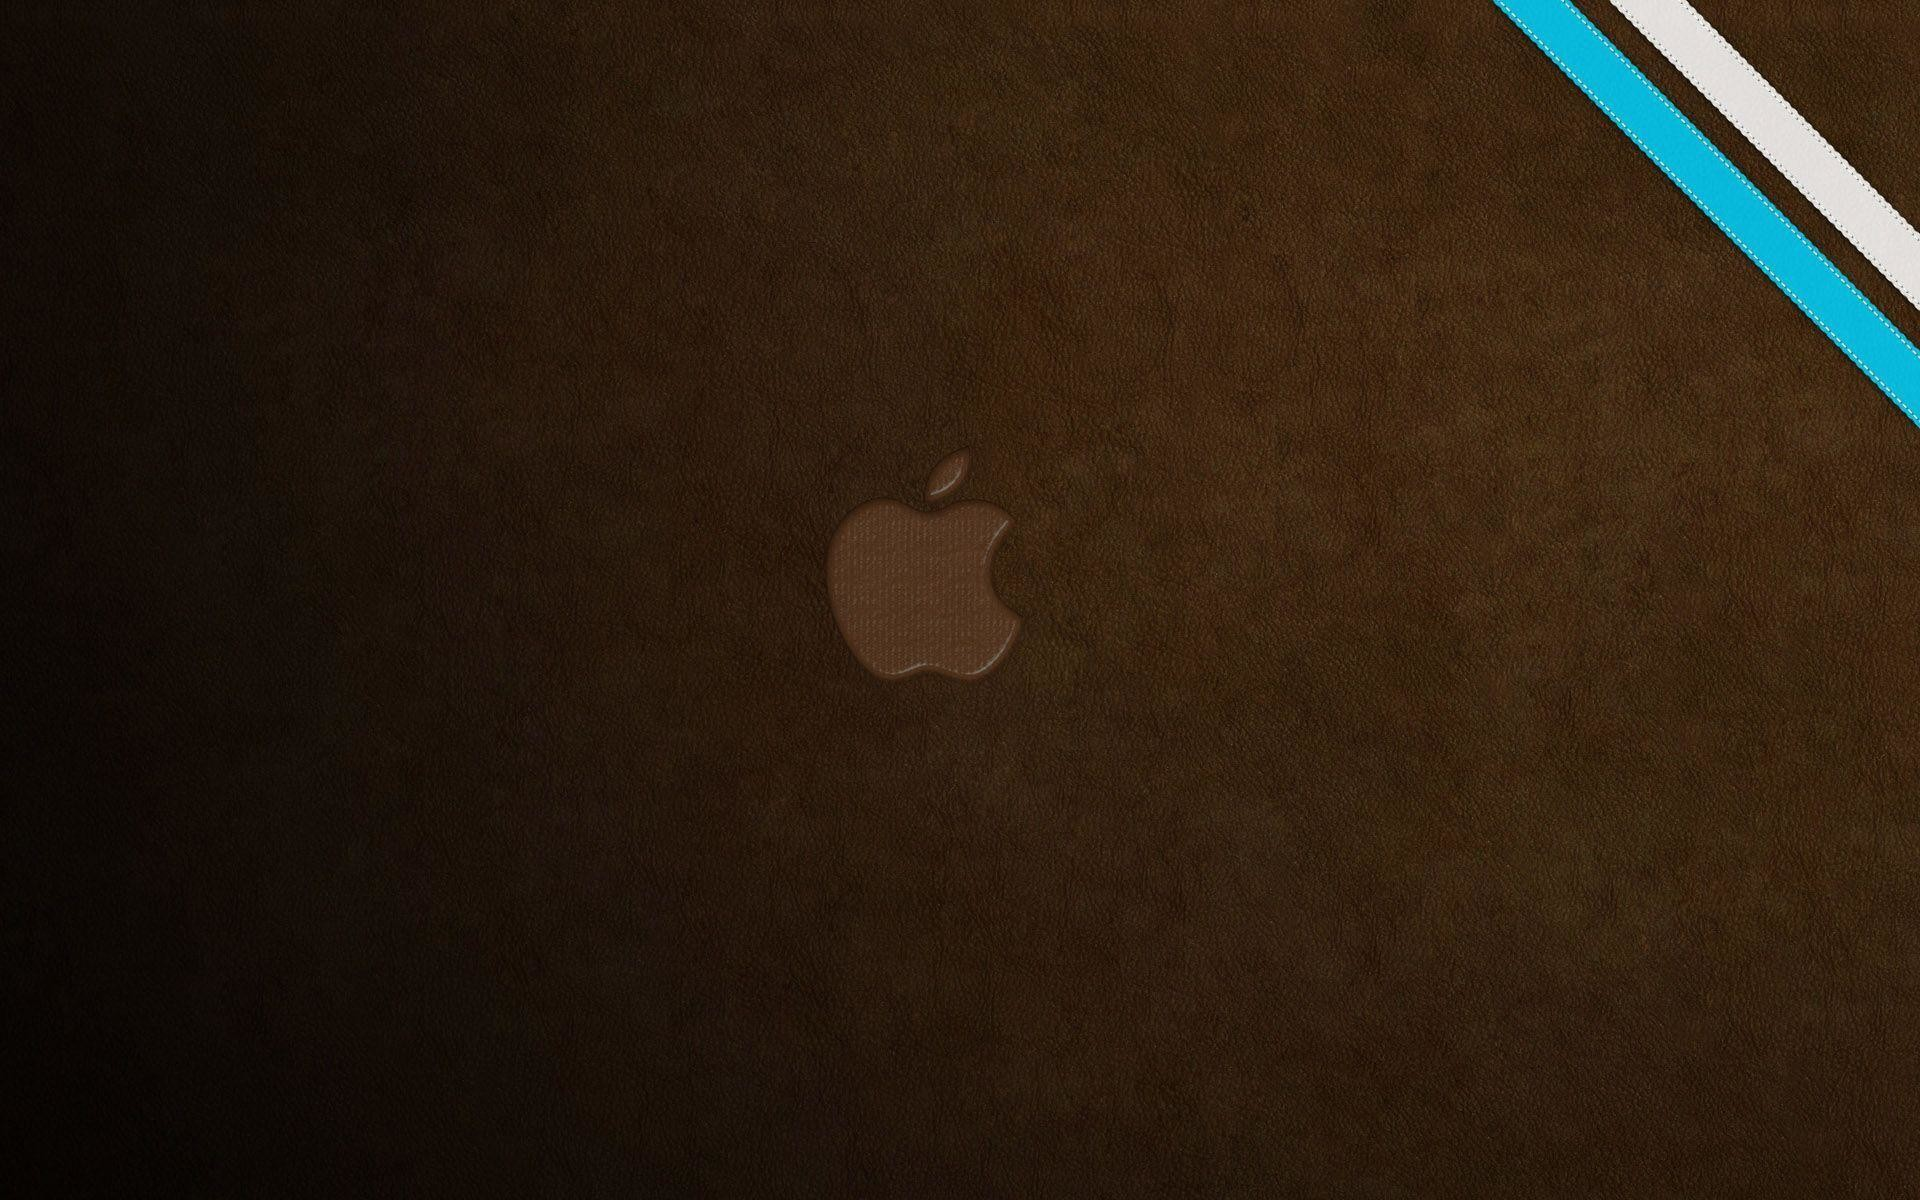 Free Wallpapers – apple logo mark on brown leather wallpaper